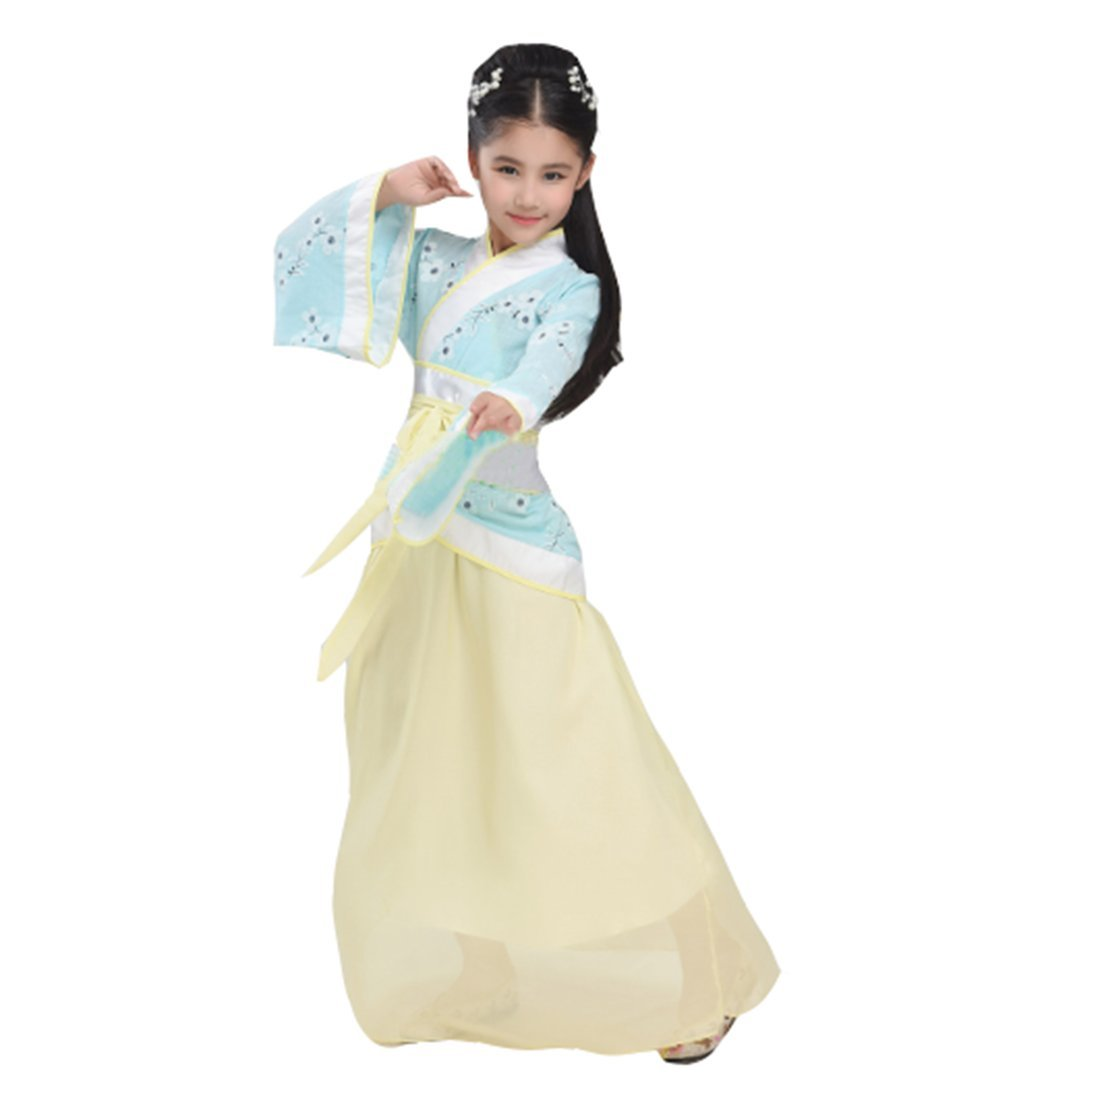 ... Ez-sofei Girls Ancient Chinese Traditional Hanfu Dress Han Dynasty  Costume ... 4d05549f7